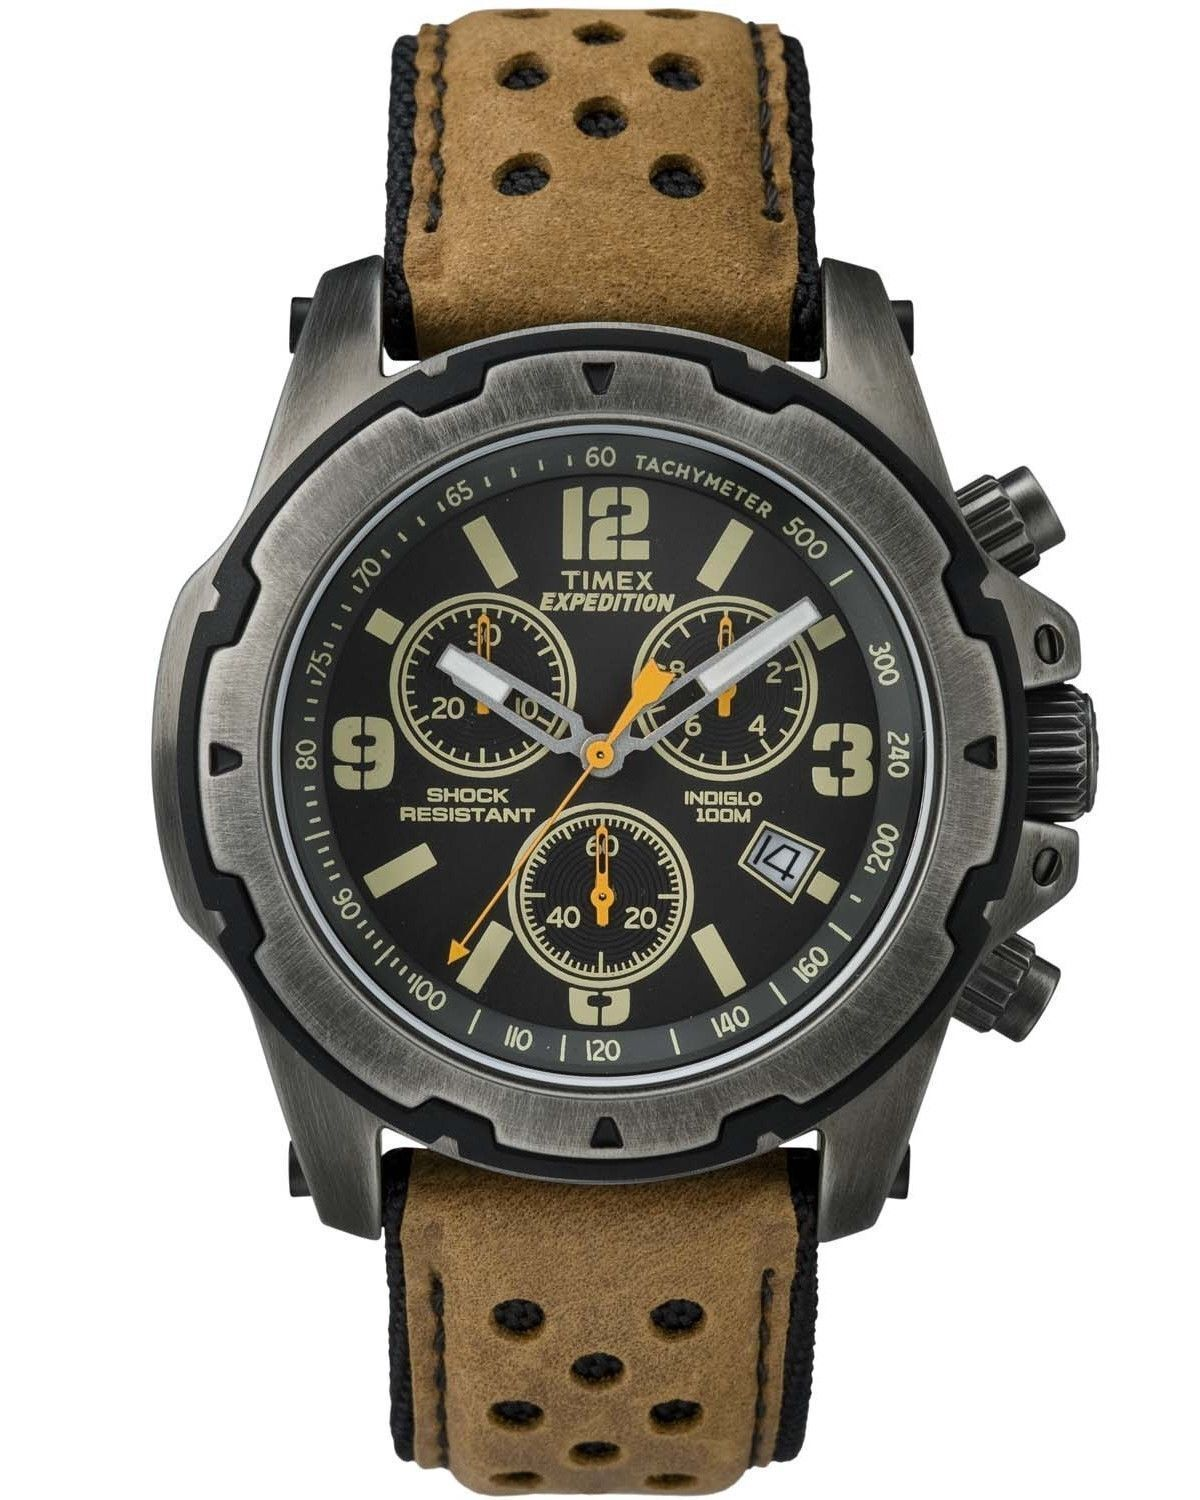 Timex Men's Expedition TW4B01500 Gunmetal Leather Analog Qua